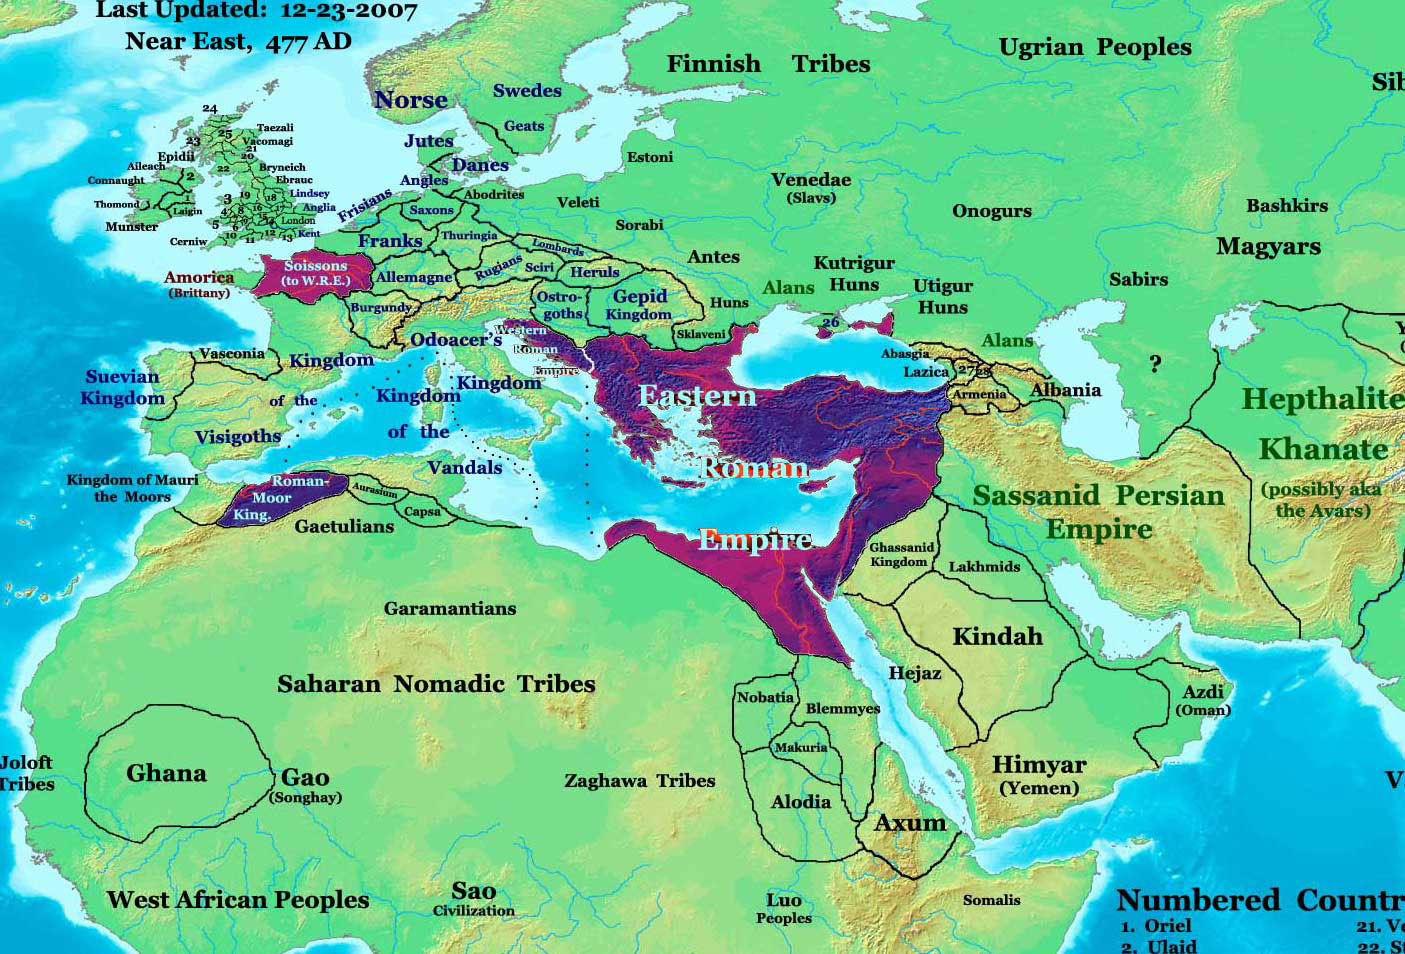 File:roman Empire 477ad.jpg